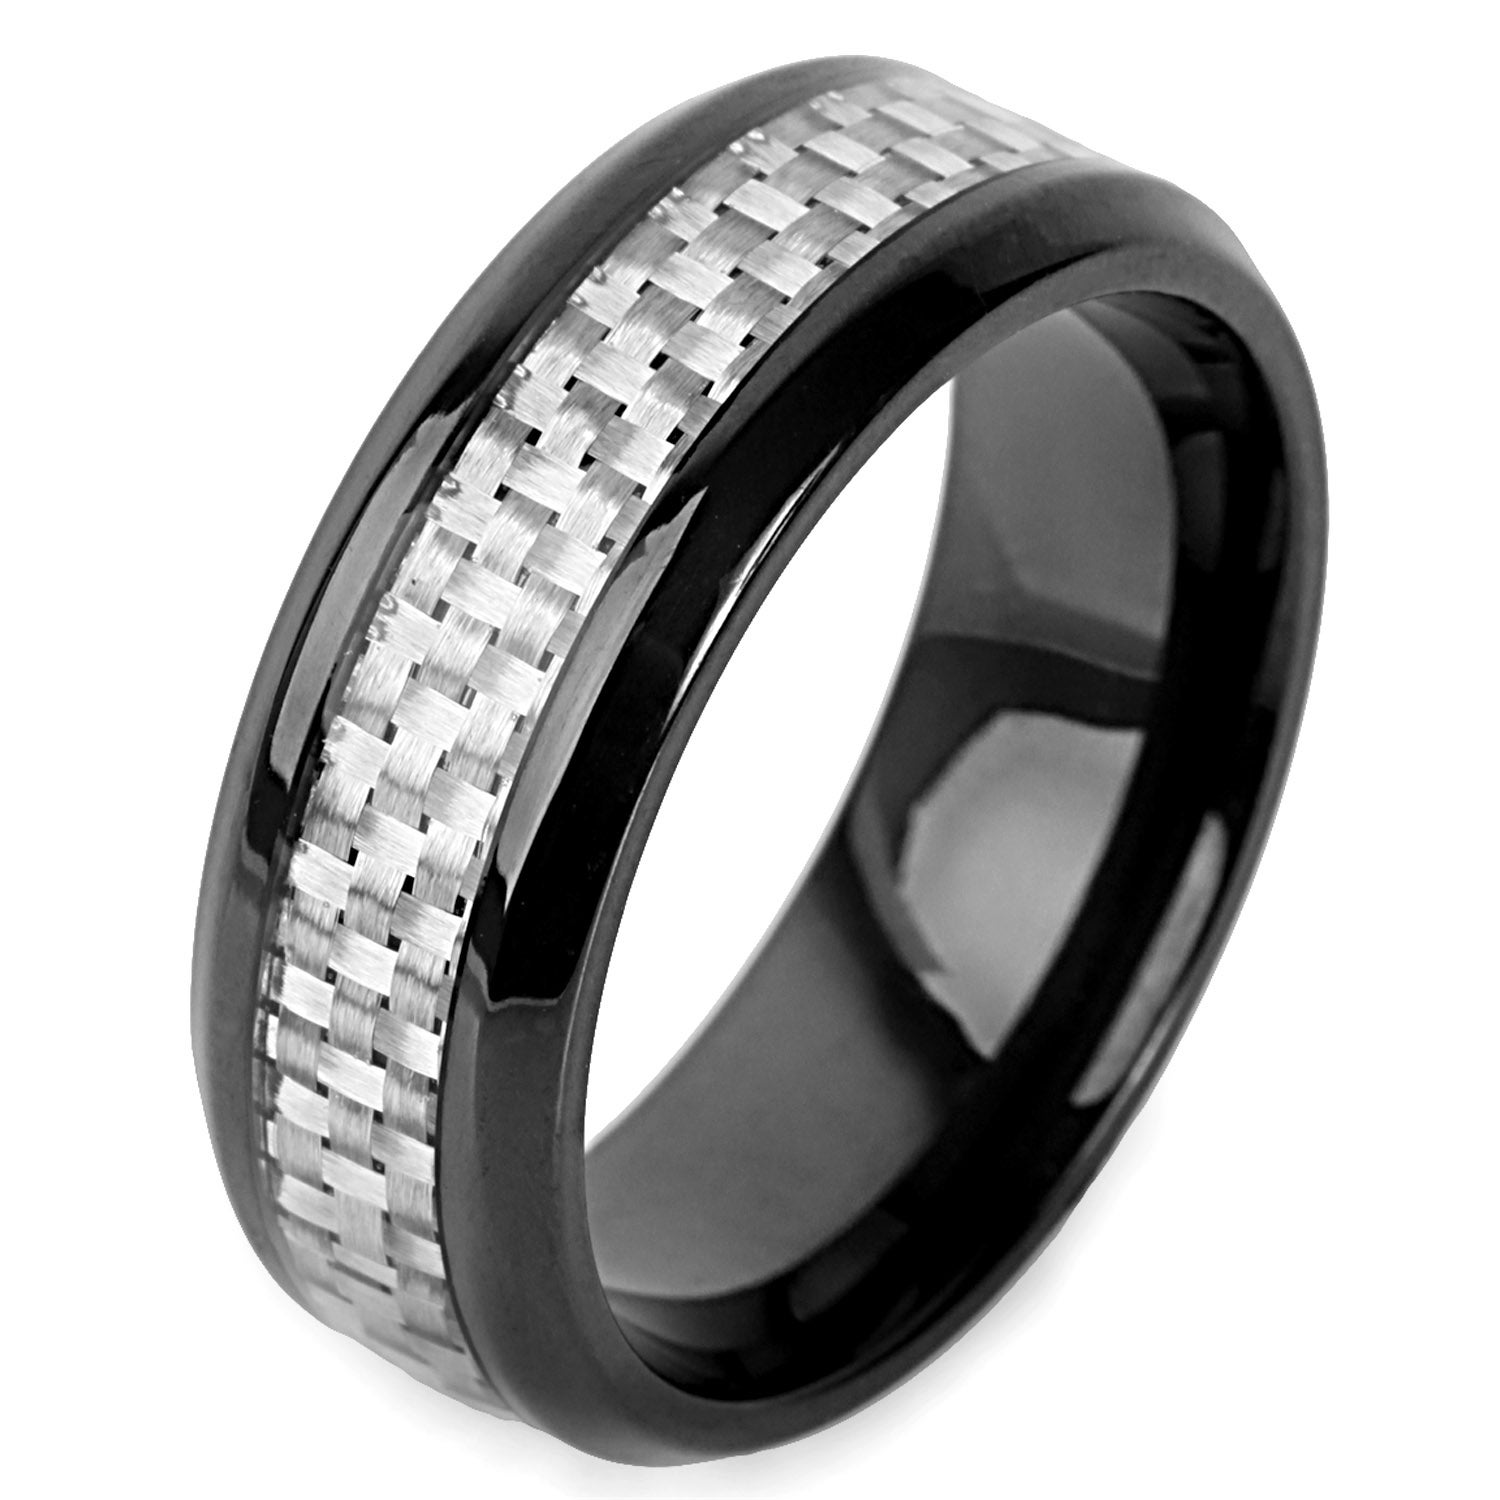 corrals dragonclothing ring vwcxrjdn carbon inlay design wedding set net rings fiber band lake side